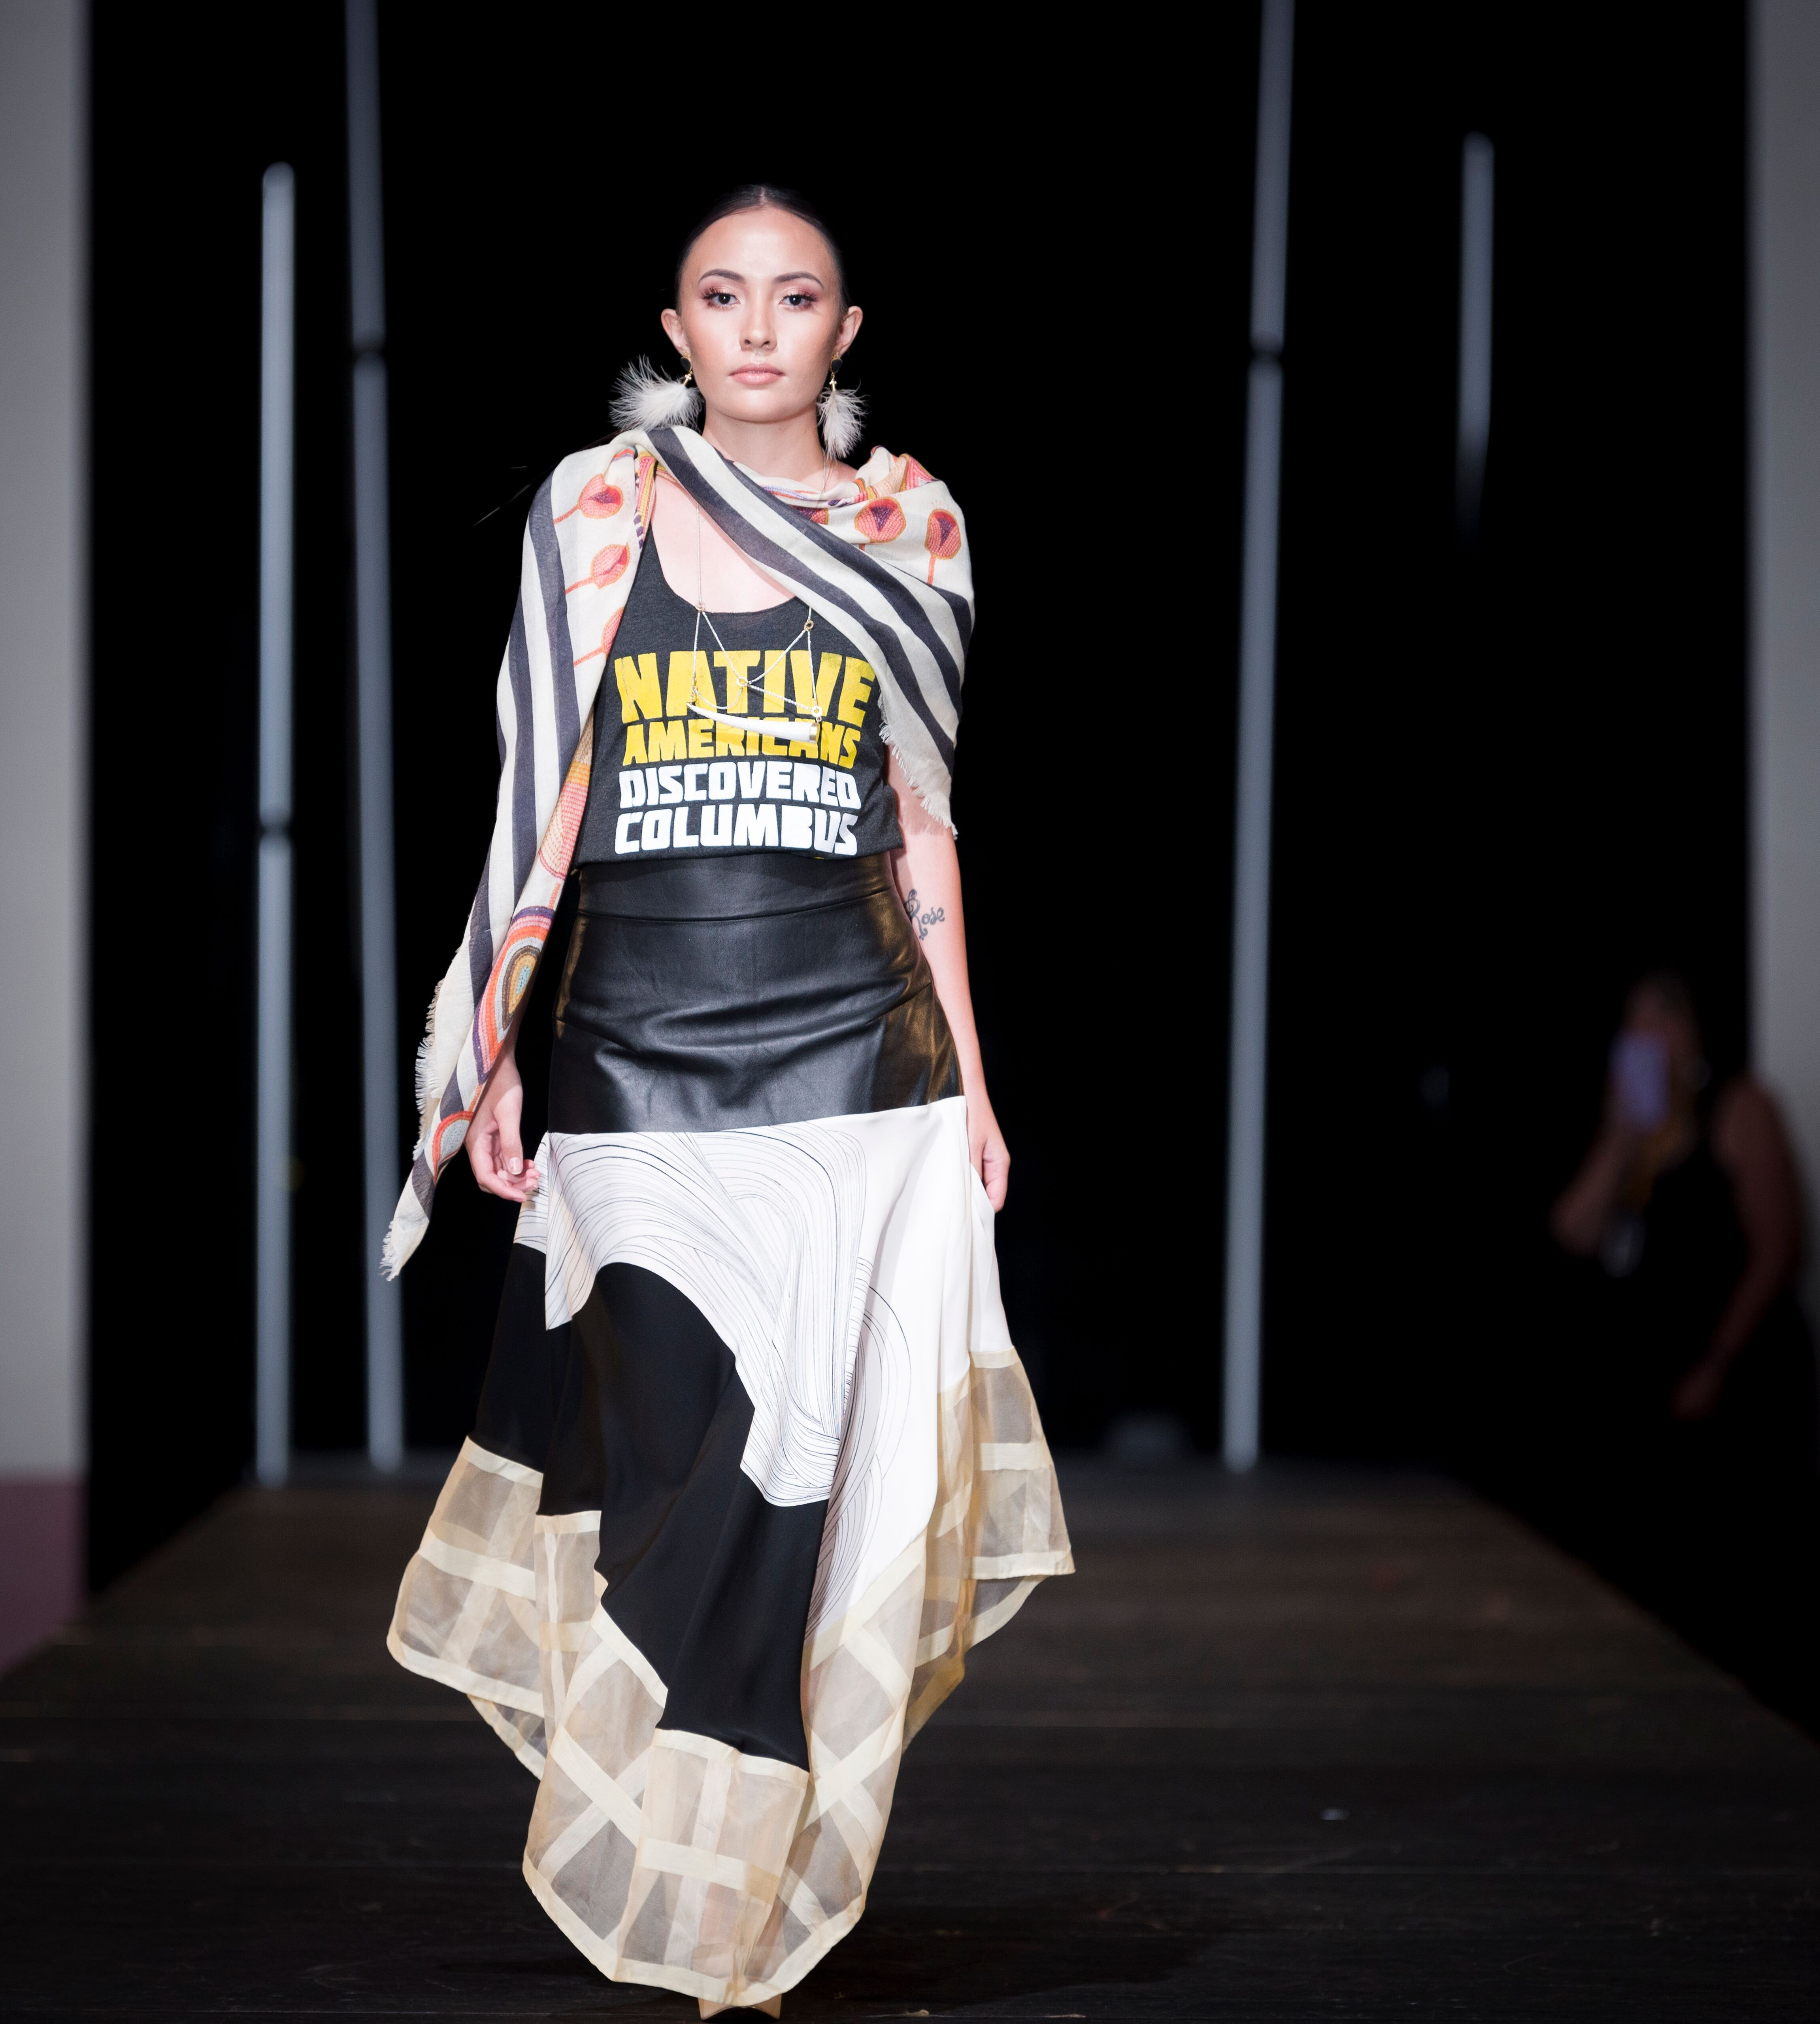 Indigenizing Fashion Squeeze Out The Appropriators